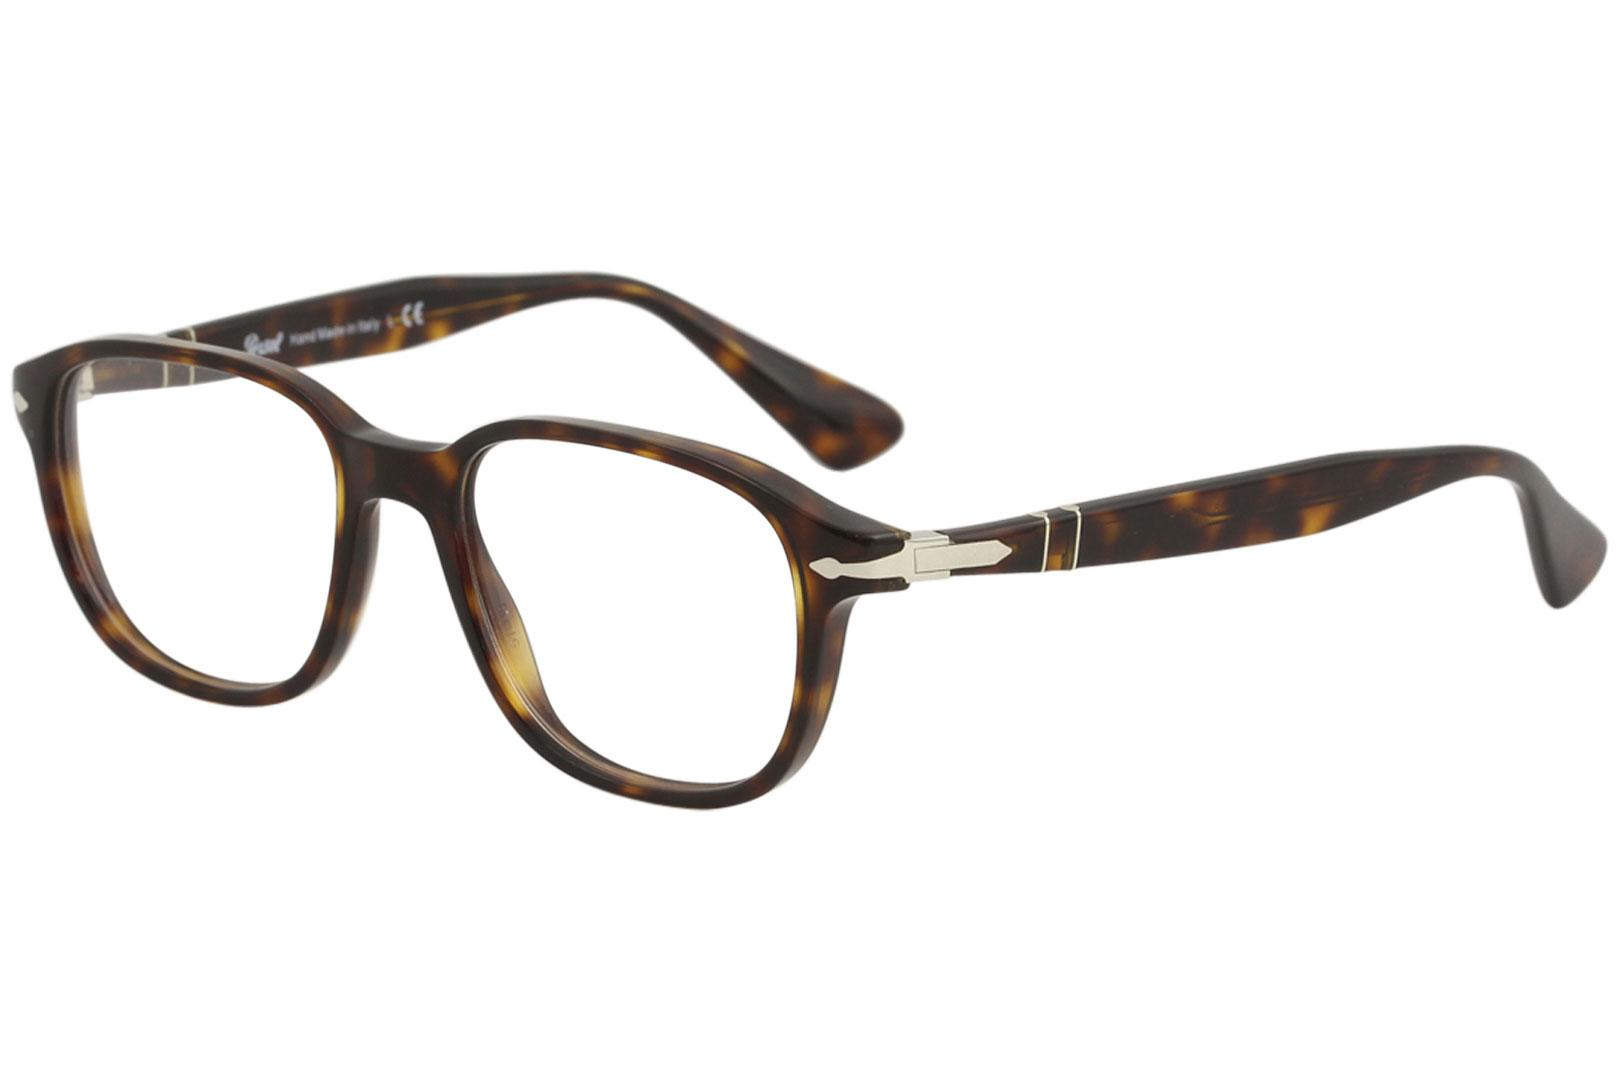 7756c71ff02 Persol Men s Eyeglasses PO3145V PO 3145 V Full Rim Optical Frame